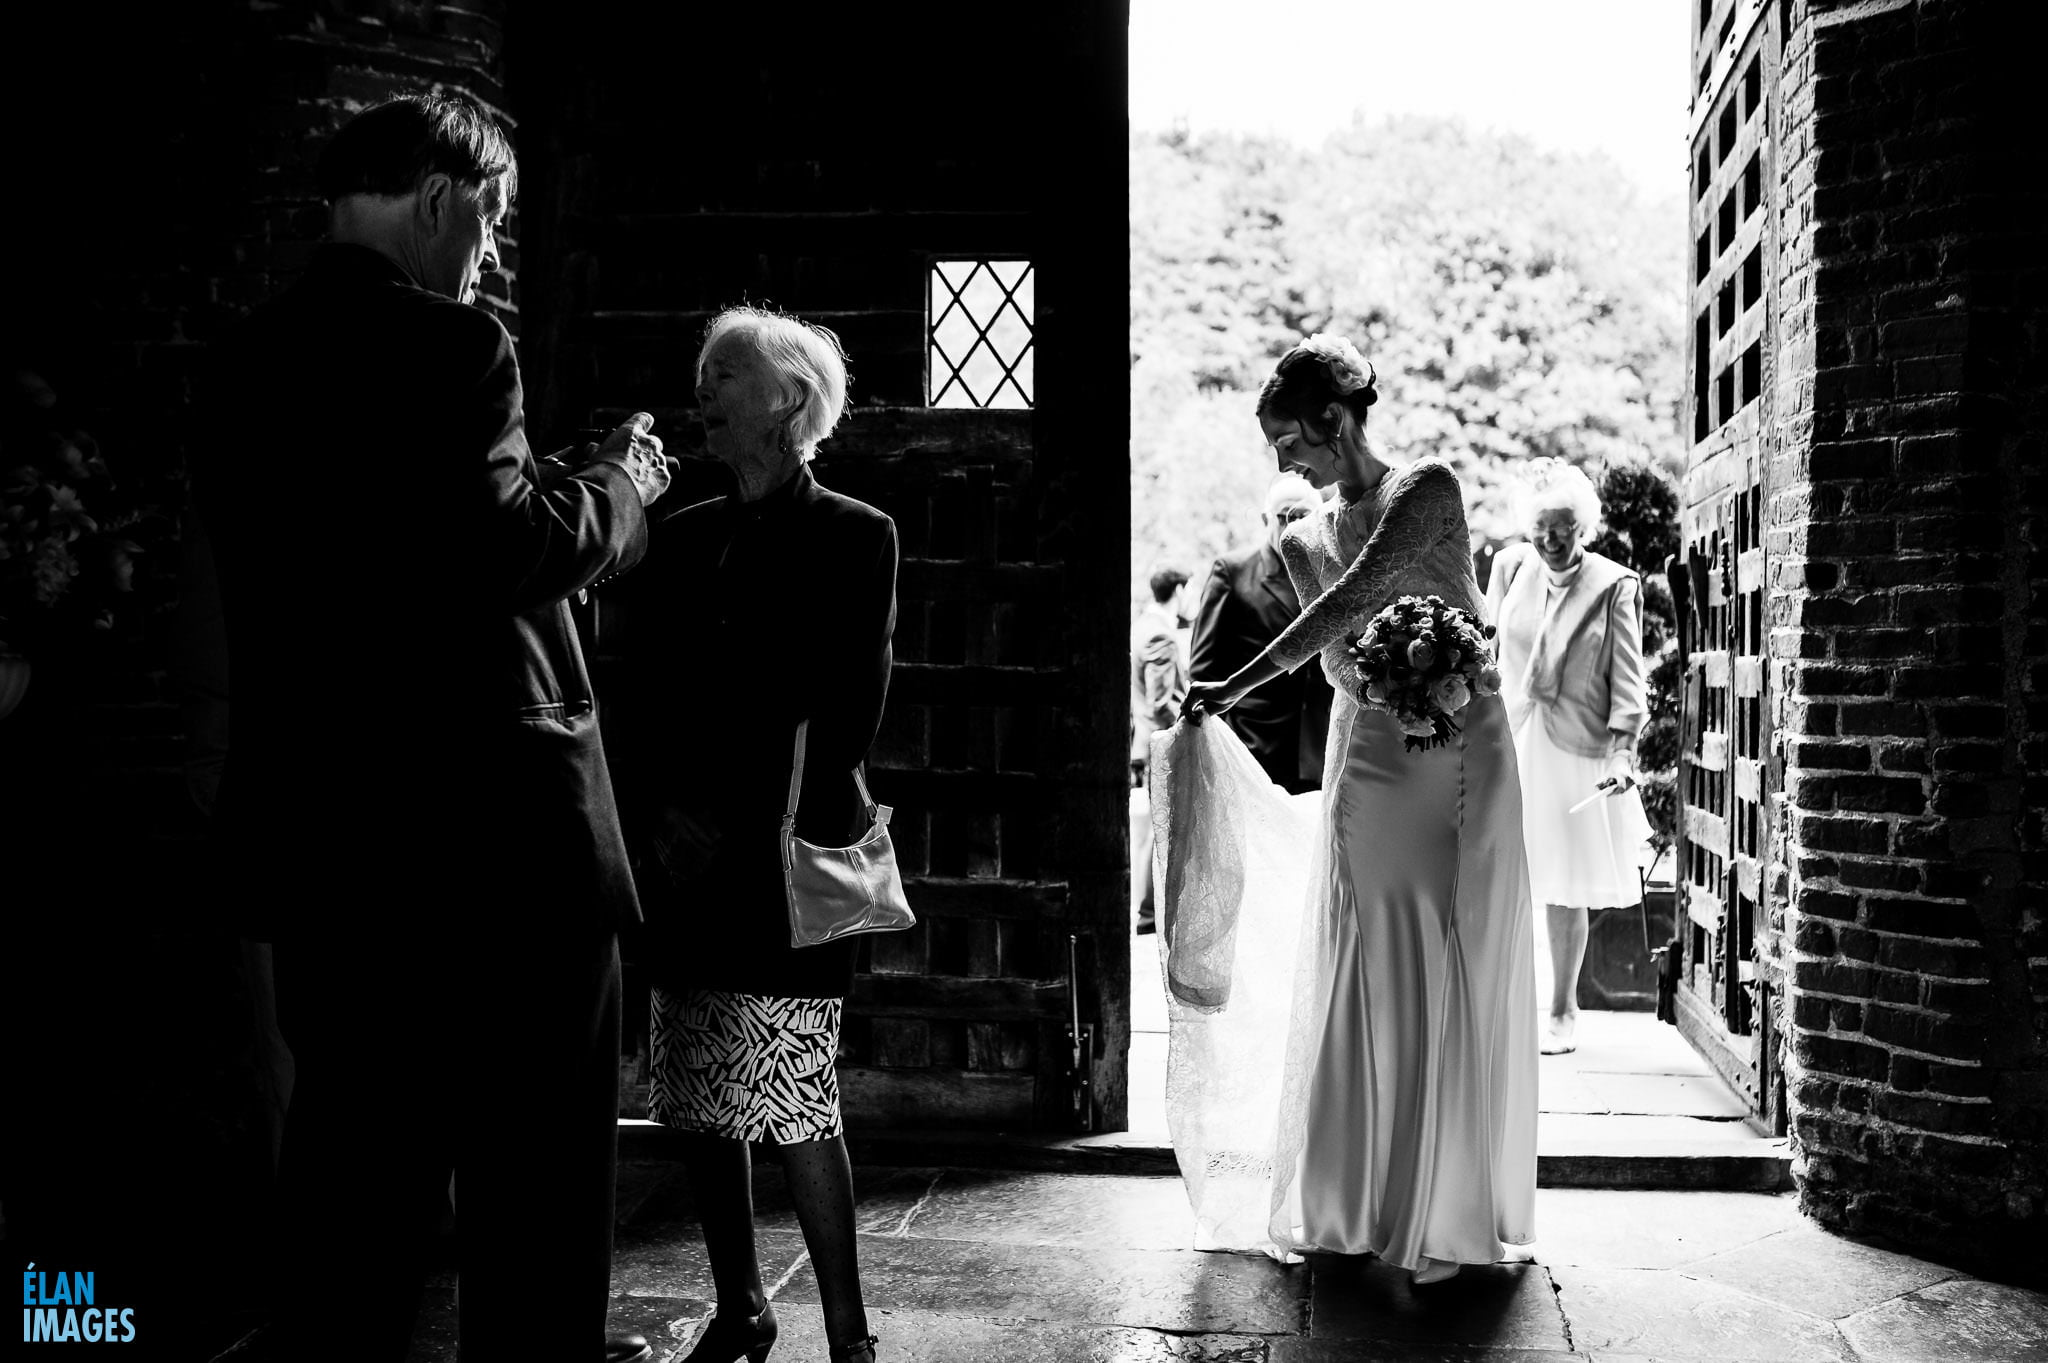 Wedding at Leez Priory, Essex 30